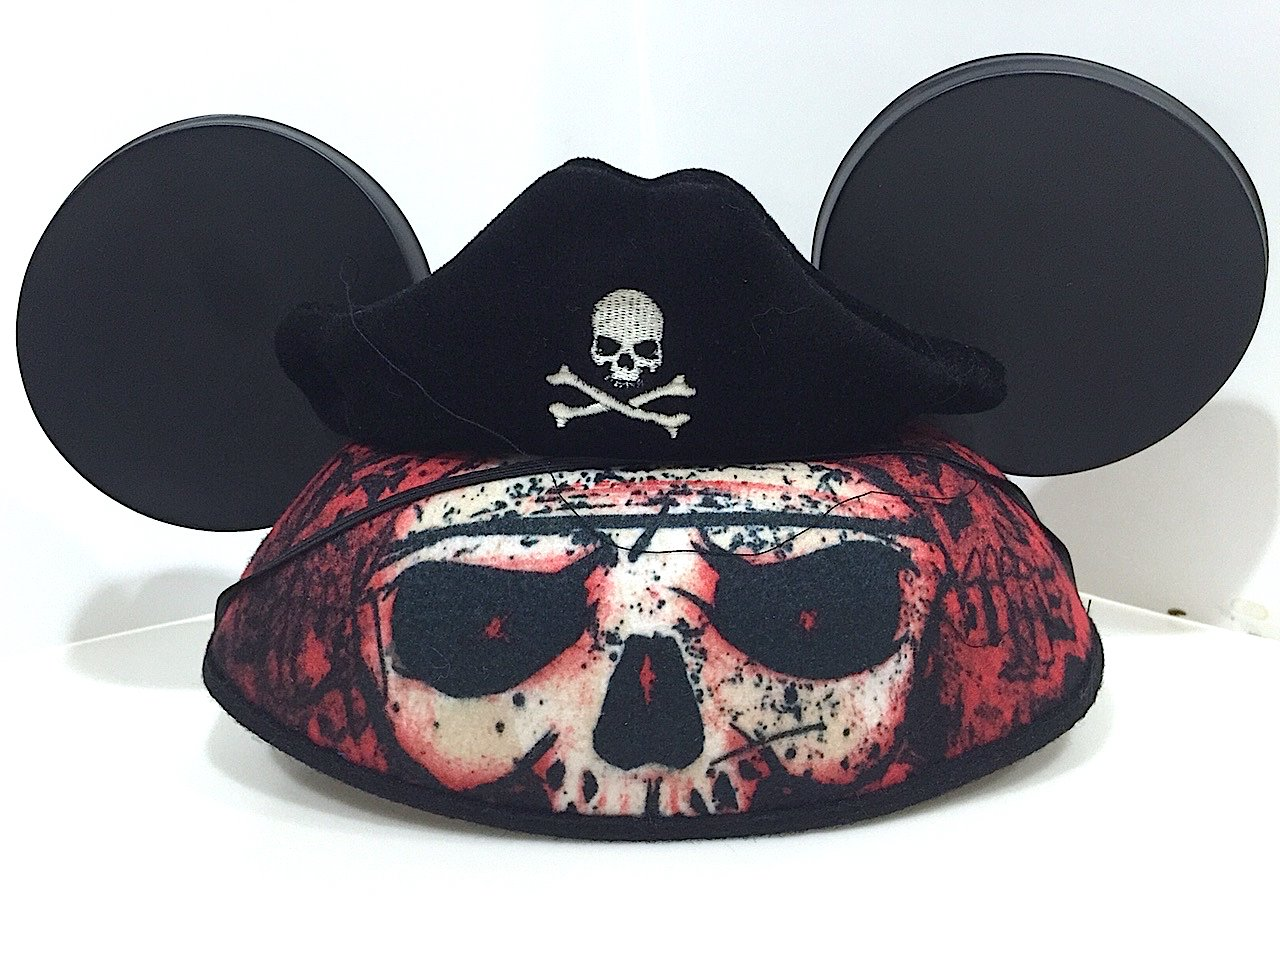 cf89abc8e3a Amazon.com  Disney Parks Mickey Mouse Ears Pirate Cap Hat NEW Adult Size  Pirates  Toys   Games